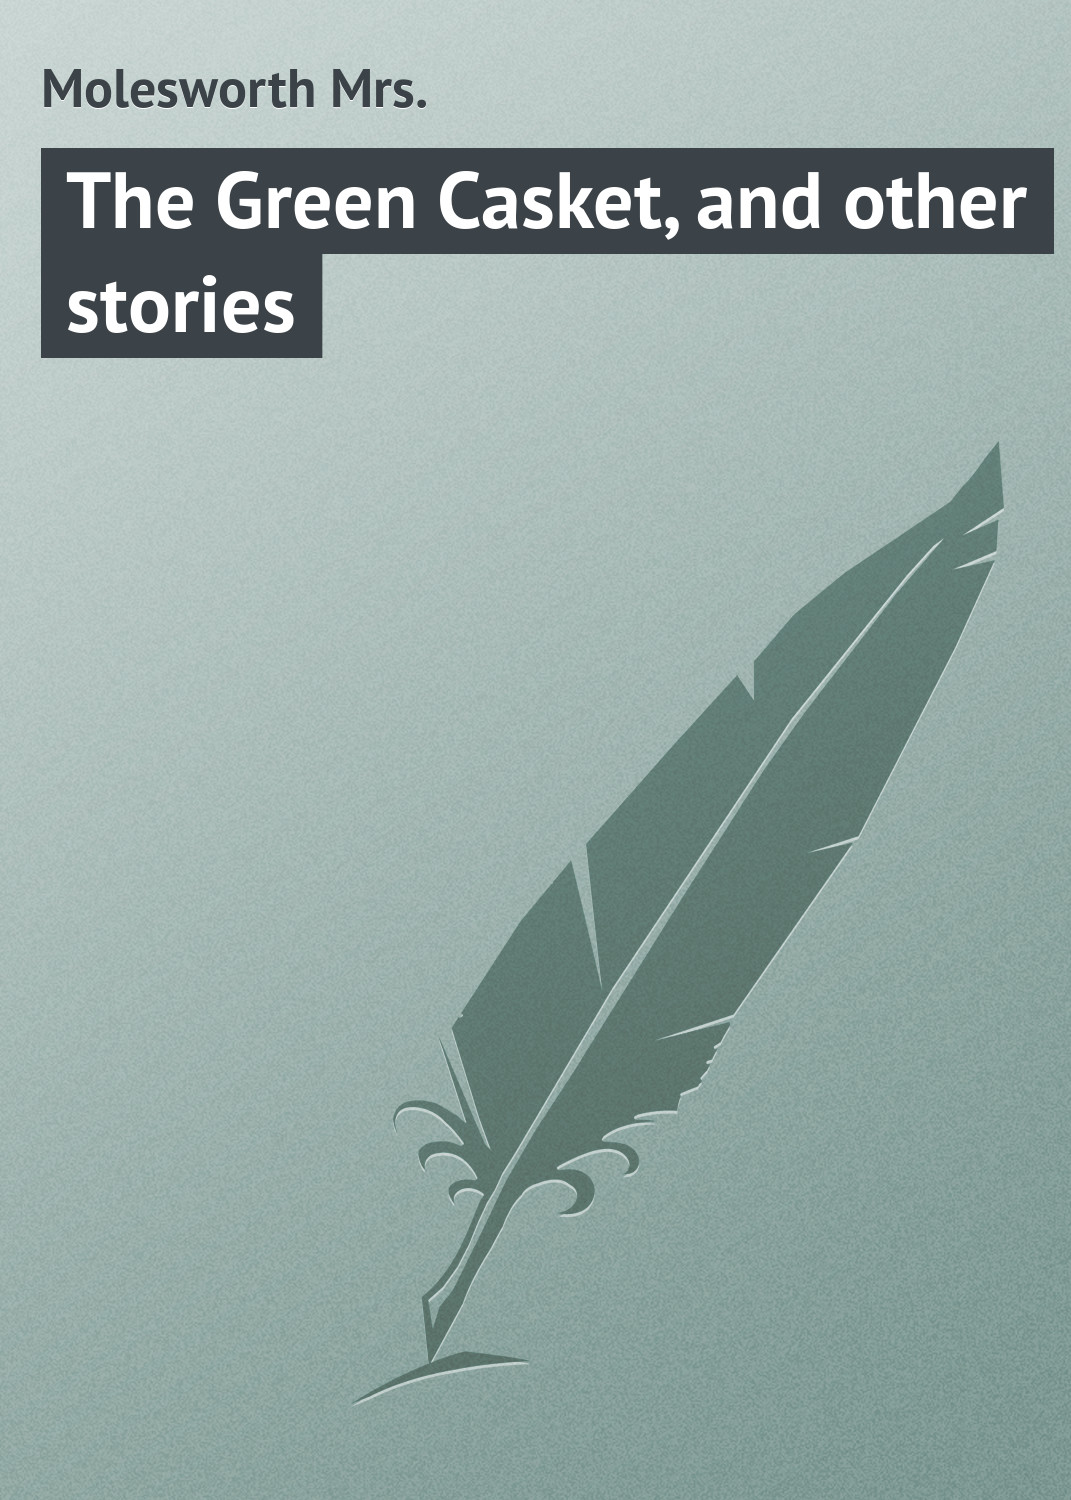 The Green Casket, and other stories